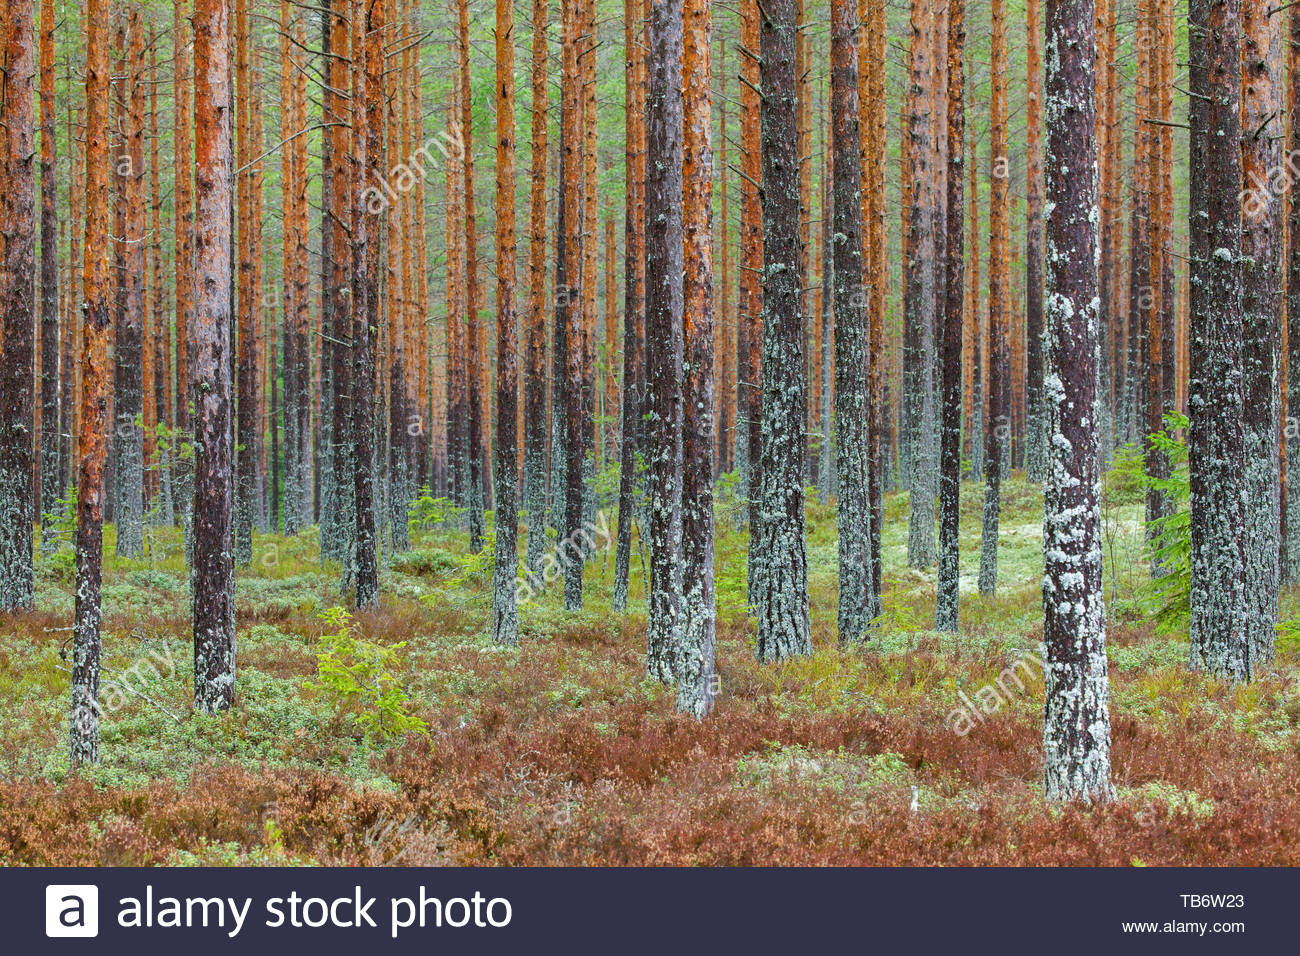 Scots Pine (Pinus sylvestris) tree trunks covered in moss and lichen in coniferous forest / taiga in Sweden, Scandinavia - Stock Image